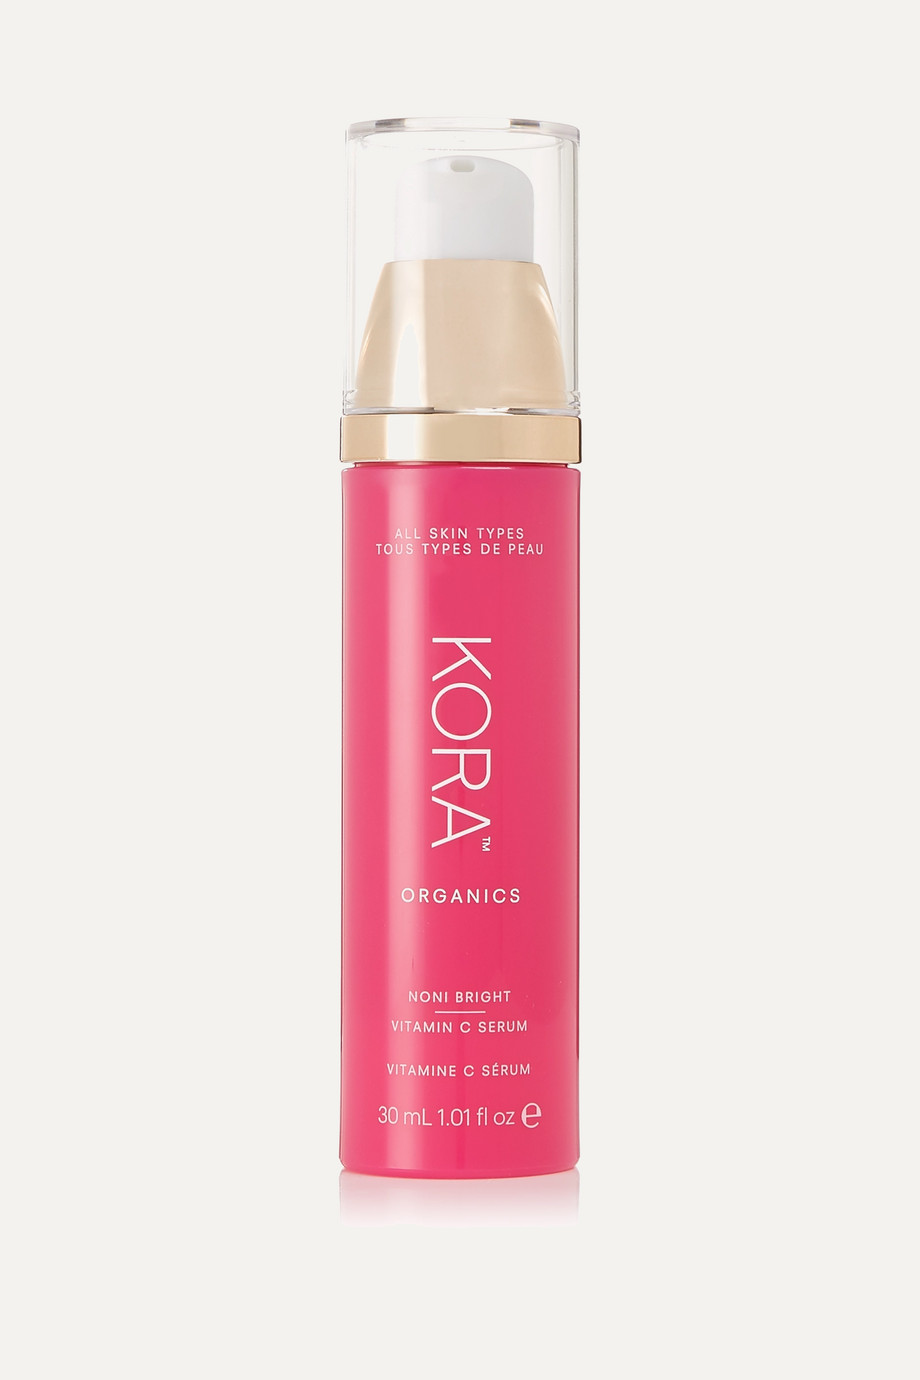 KORA ORGANICS Noni Bright Vitamin C Serum, 30ml